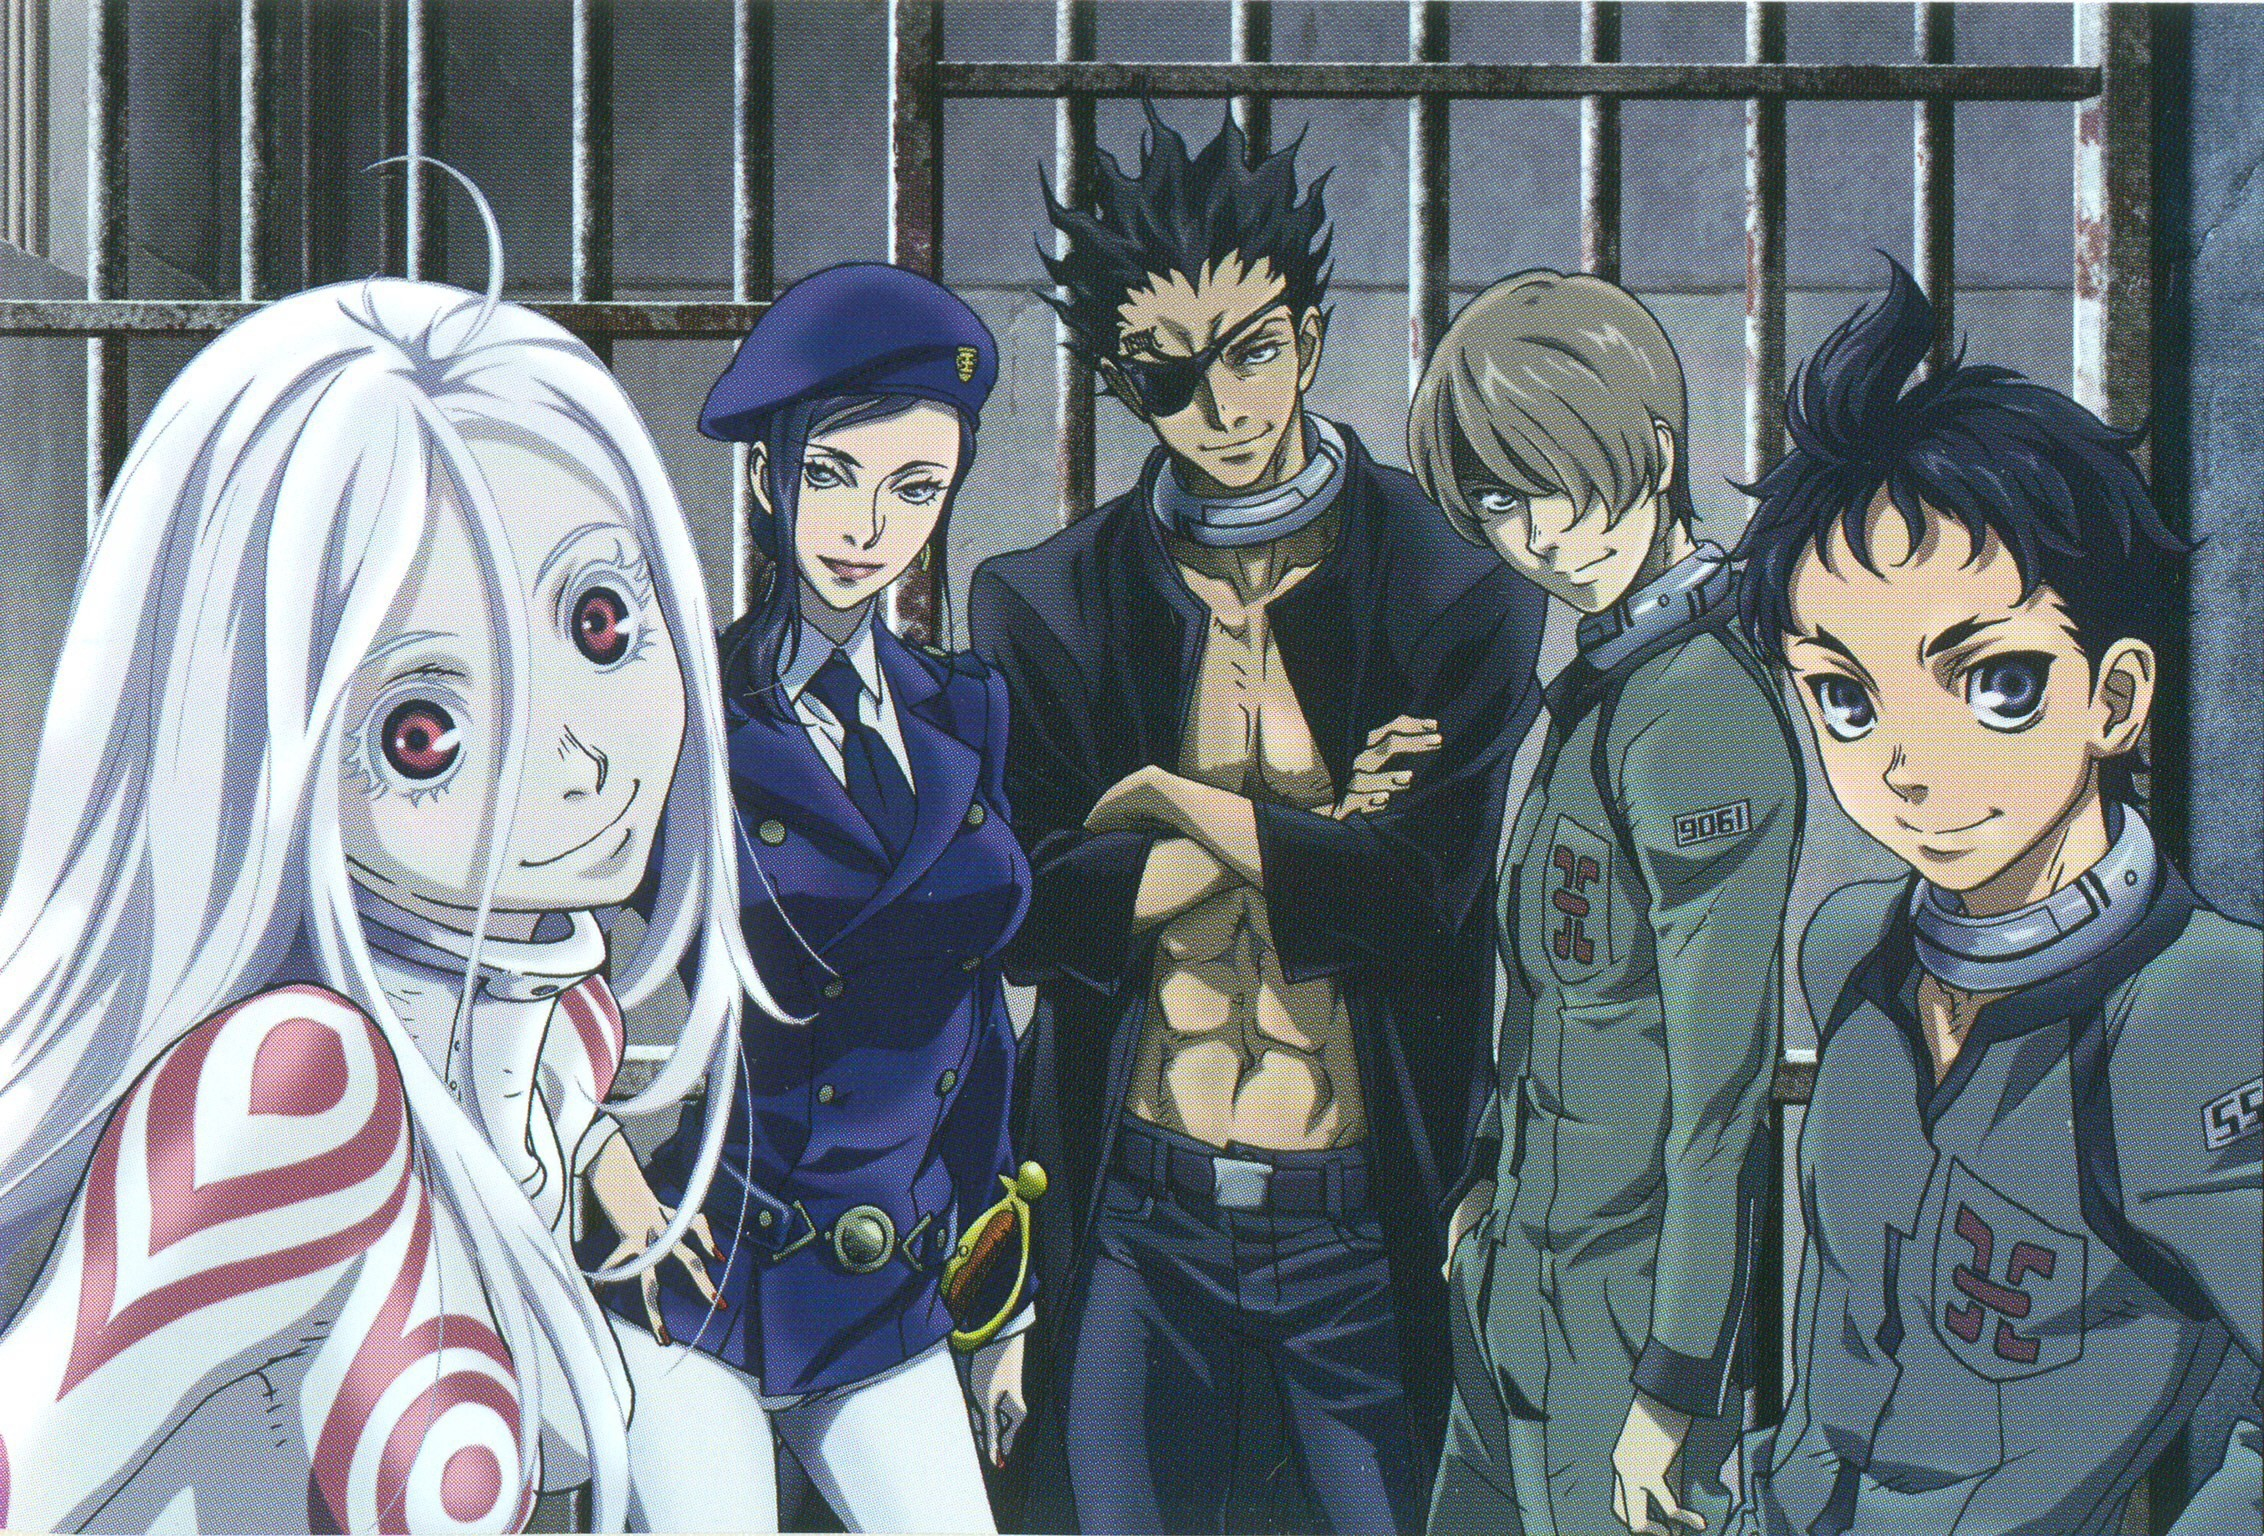 2264x1536 Deadman Wonderland images Deadman Wonderland HD wallpaper and background  photos